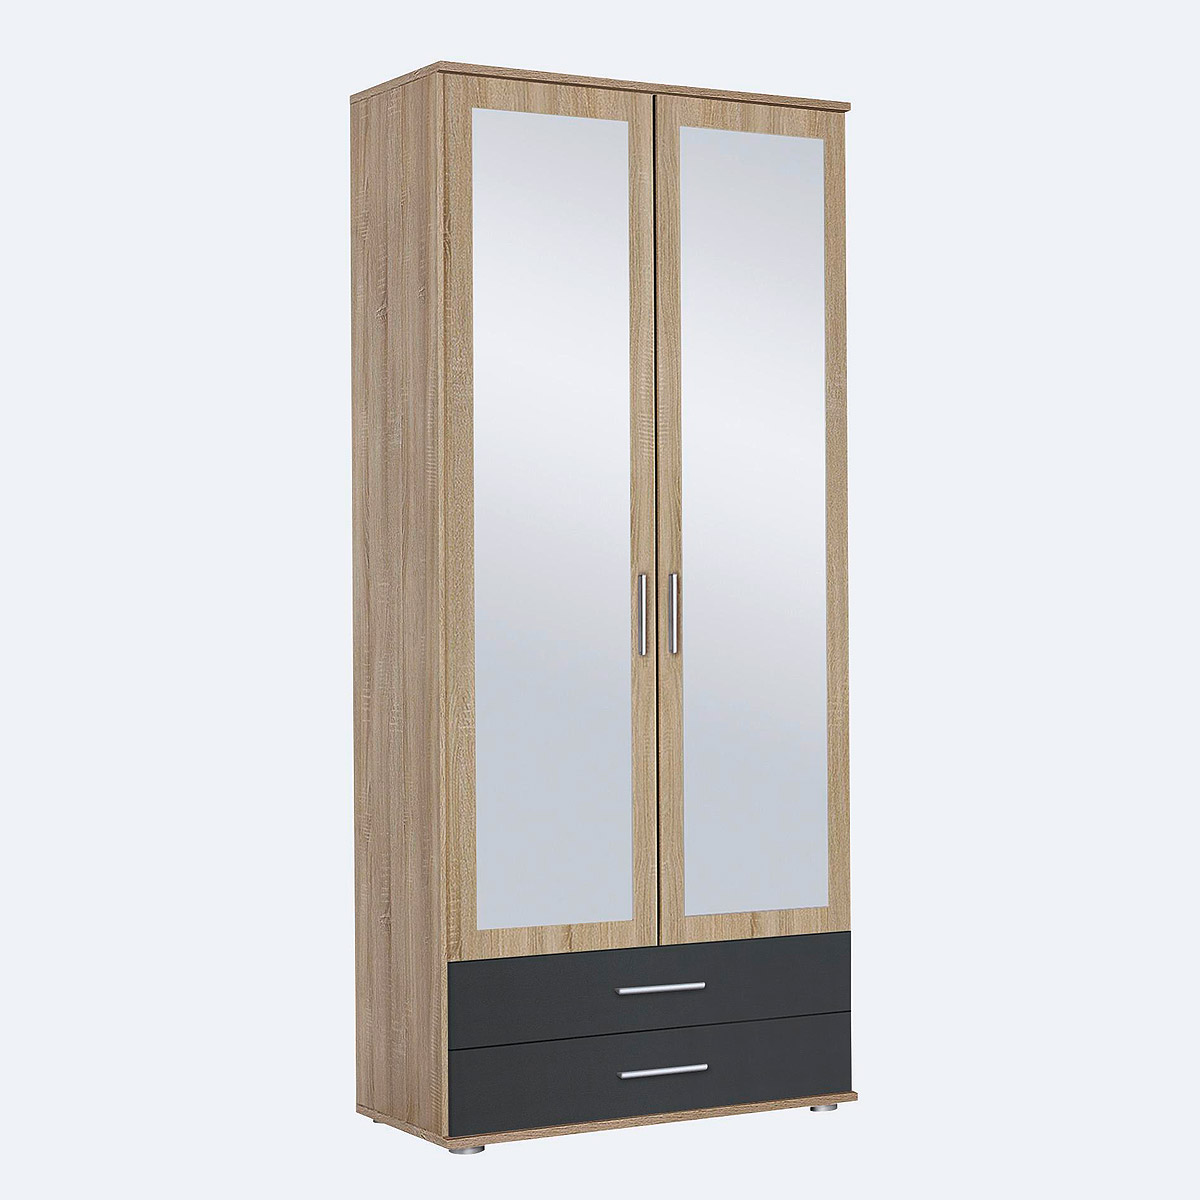 kleiderschrank rasant extra schrank eiche sonoma grau metallic b 85 cm ebay. Black Bedroom Furniture Sets. Home Design Ideas